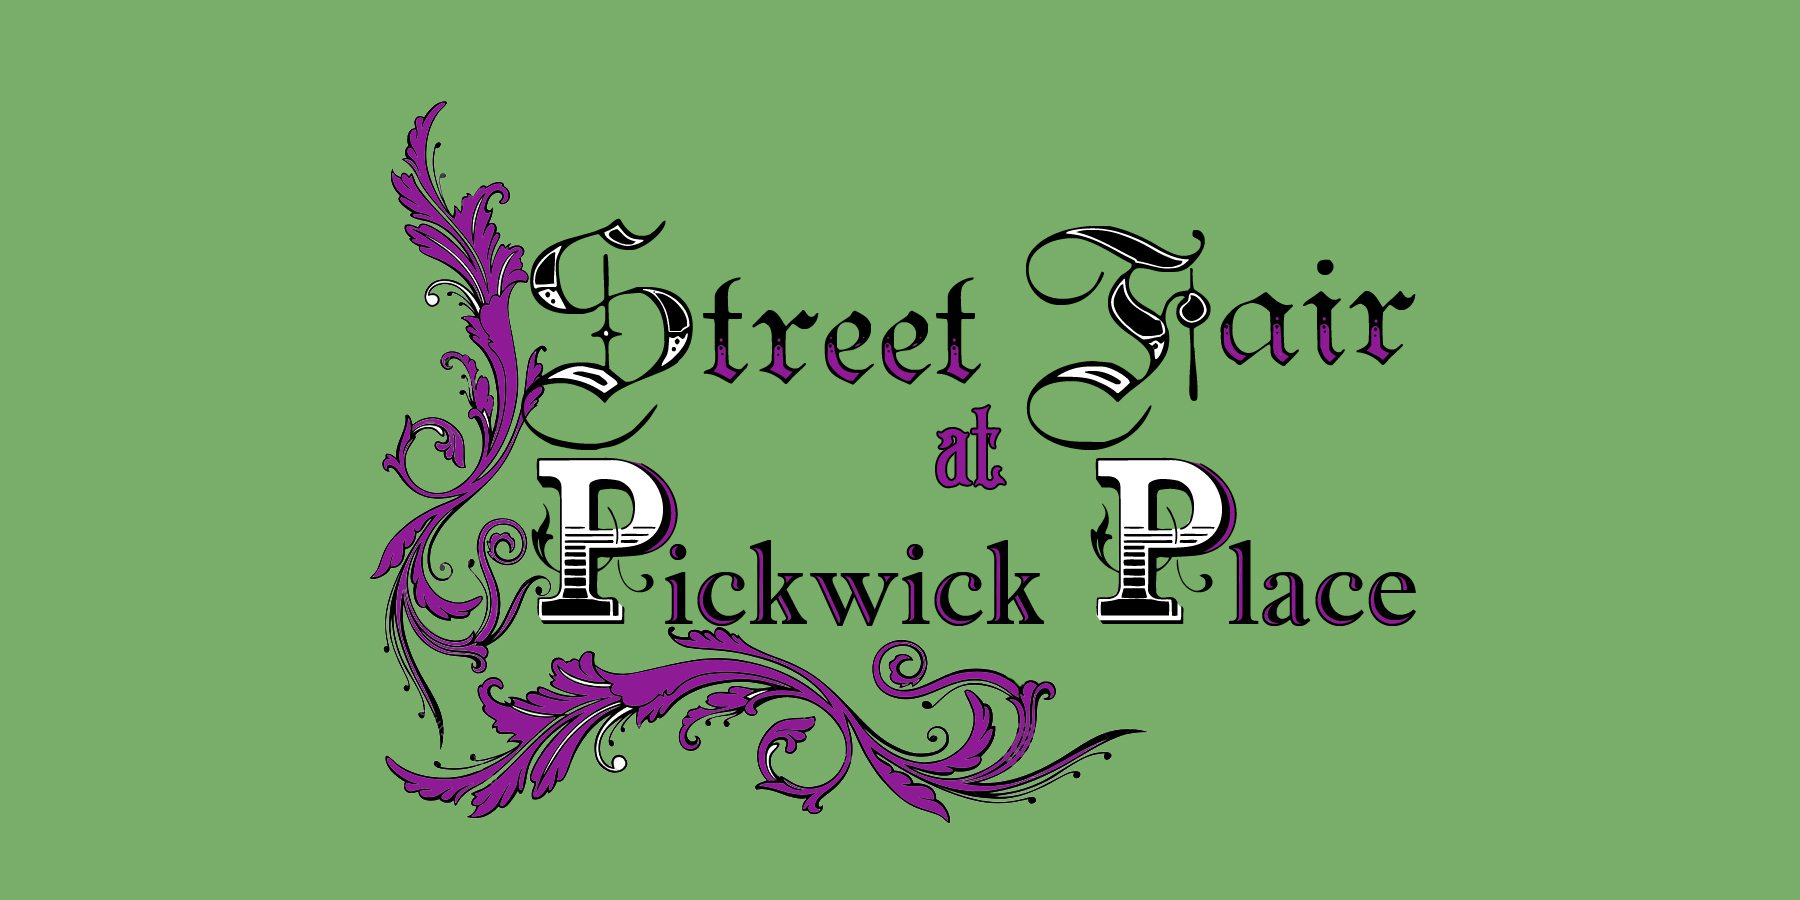 Street Fair at Pickwick Place